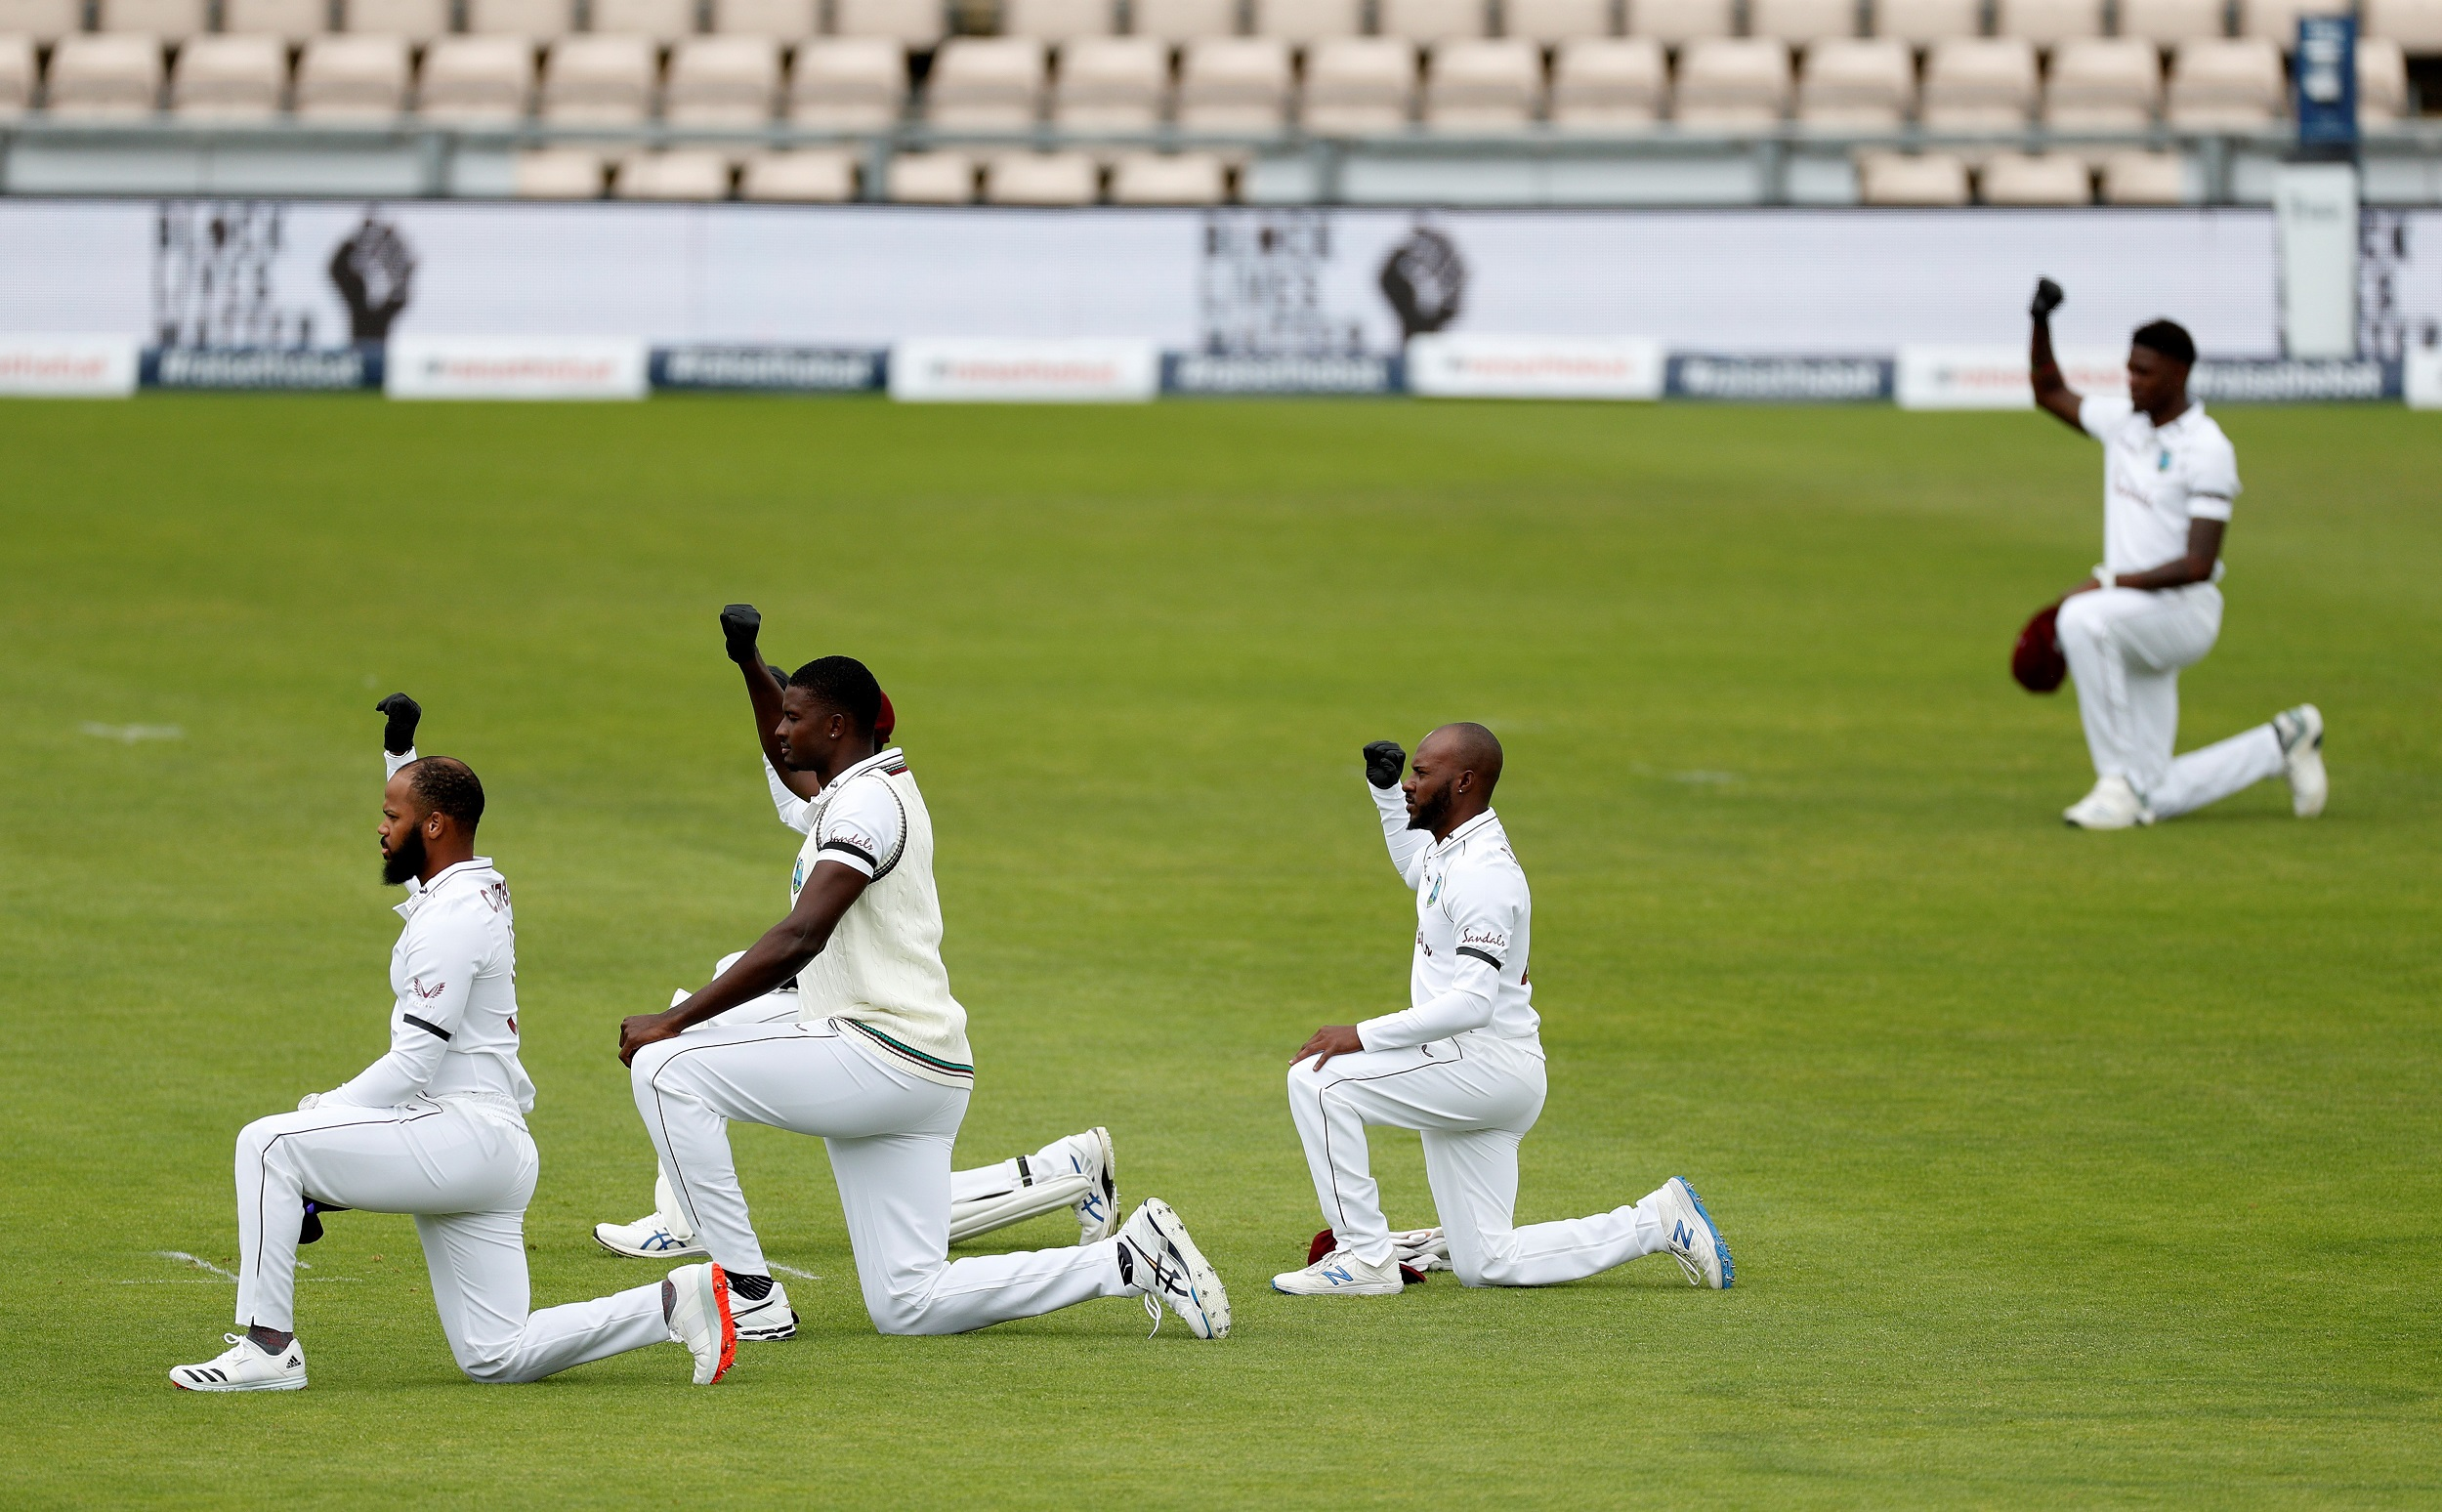 Sammy backs Ngidi after former SA players criticise pacer on 'BLM' stand